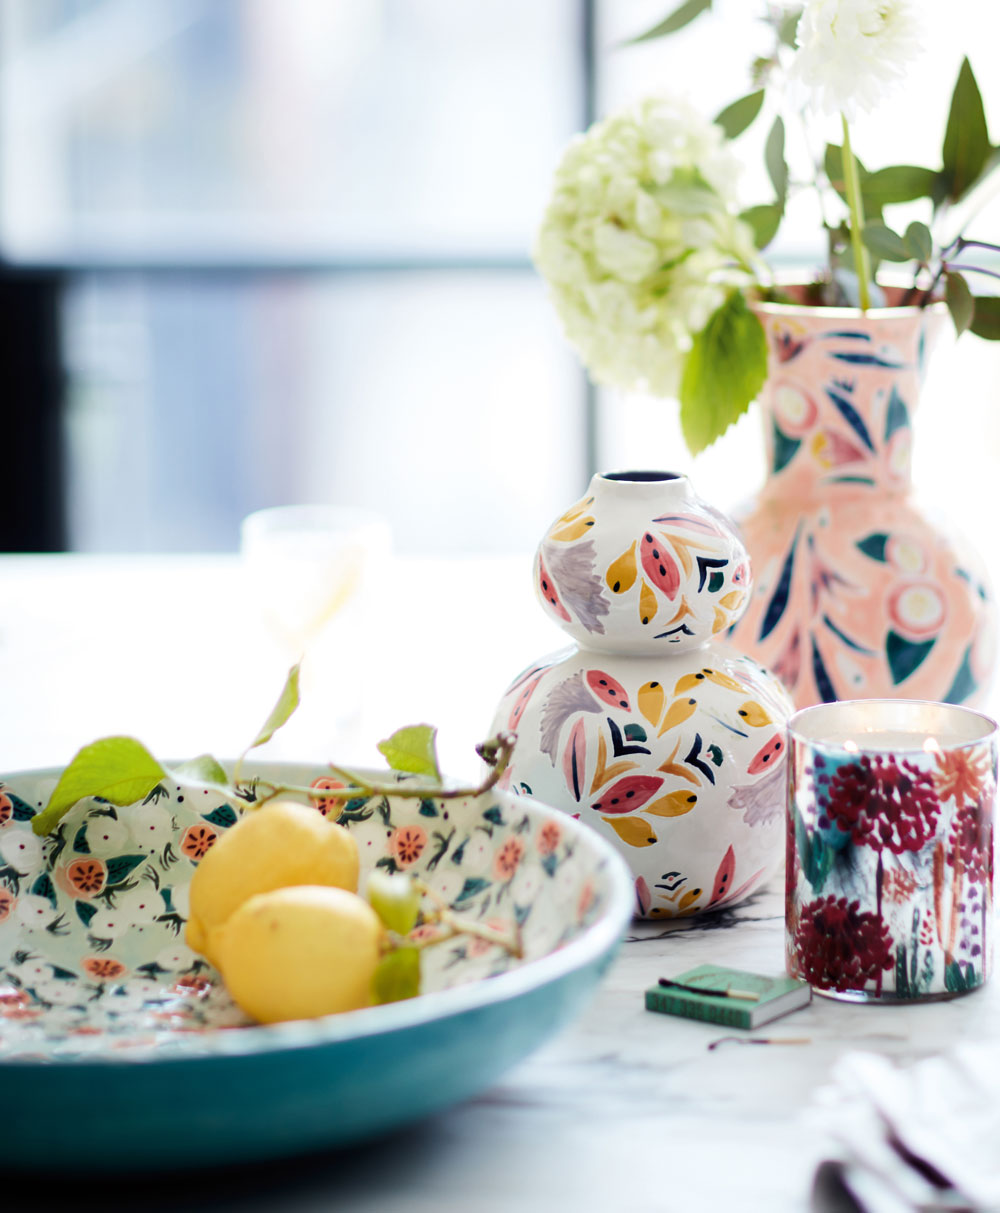 Today I'm sharing what you can expect from the Anthropologie AW18 collection, entitled Portrait of a Home. Come discover my favourite pieces.